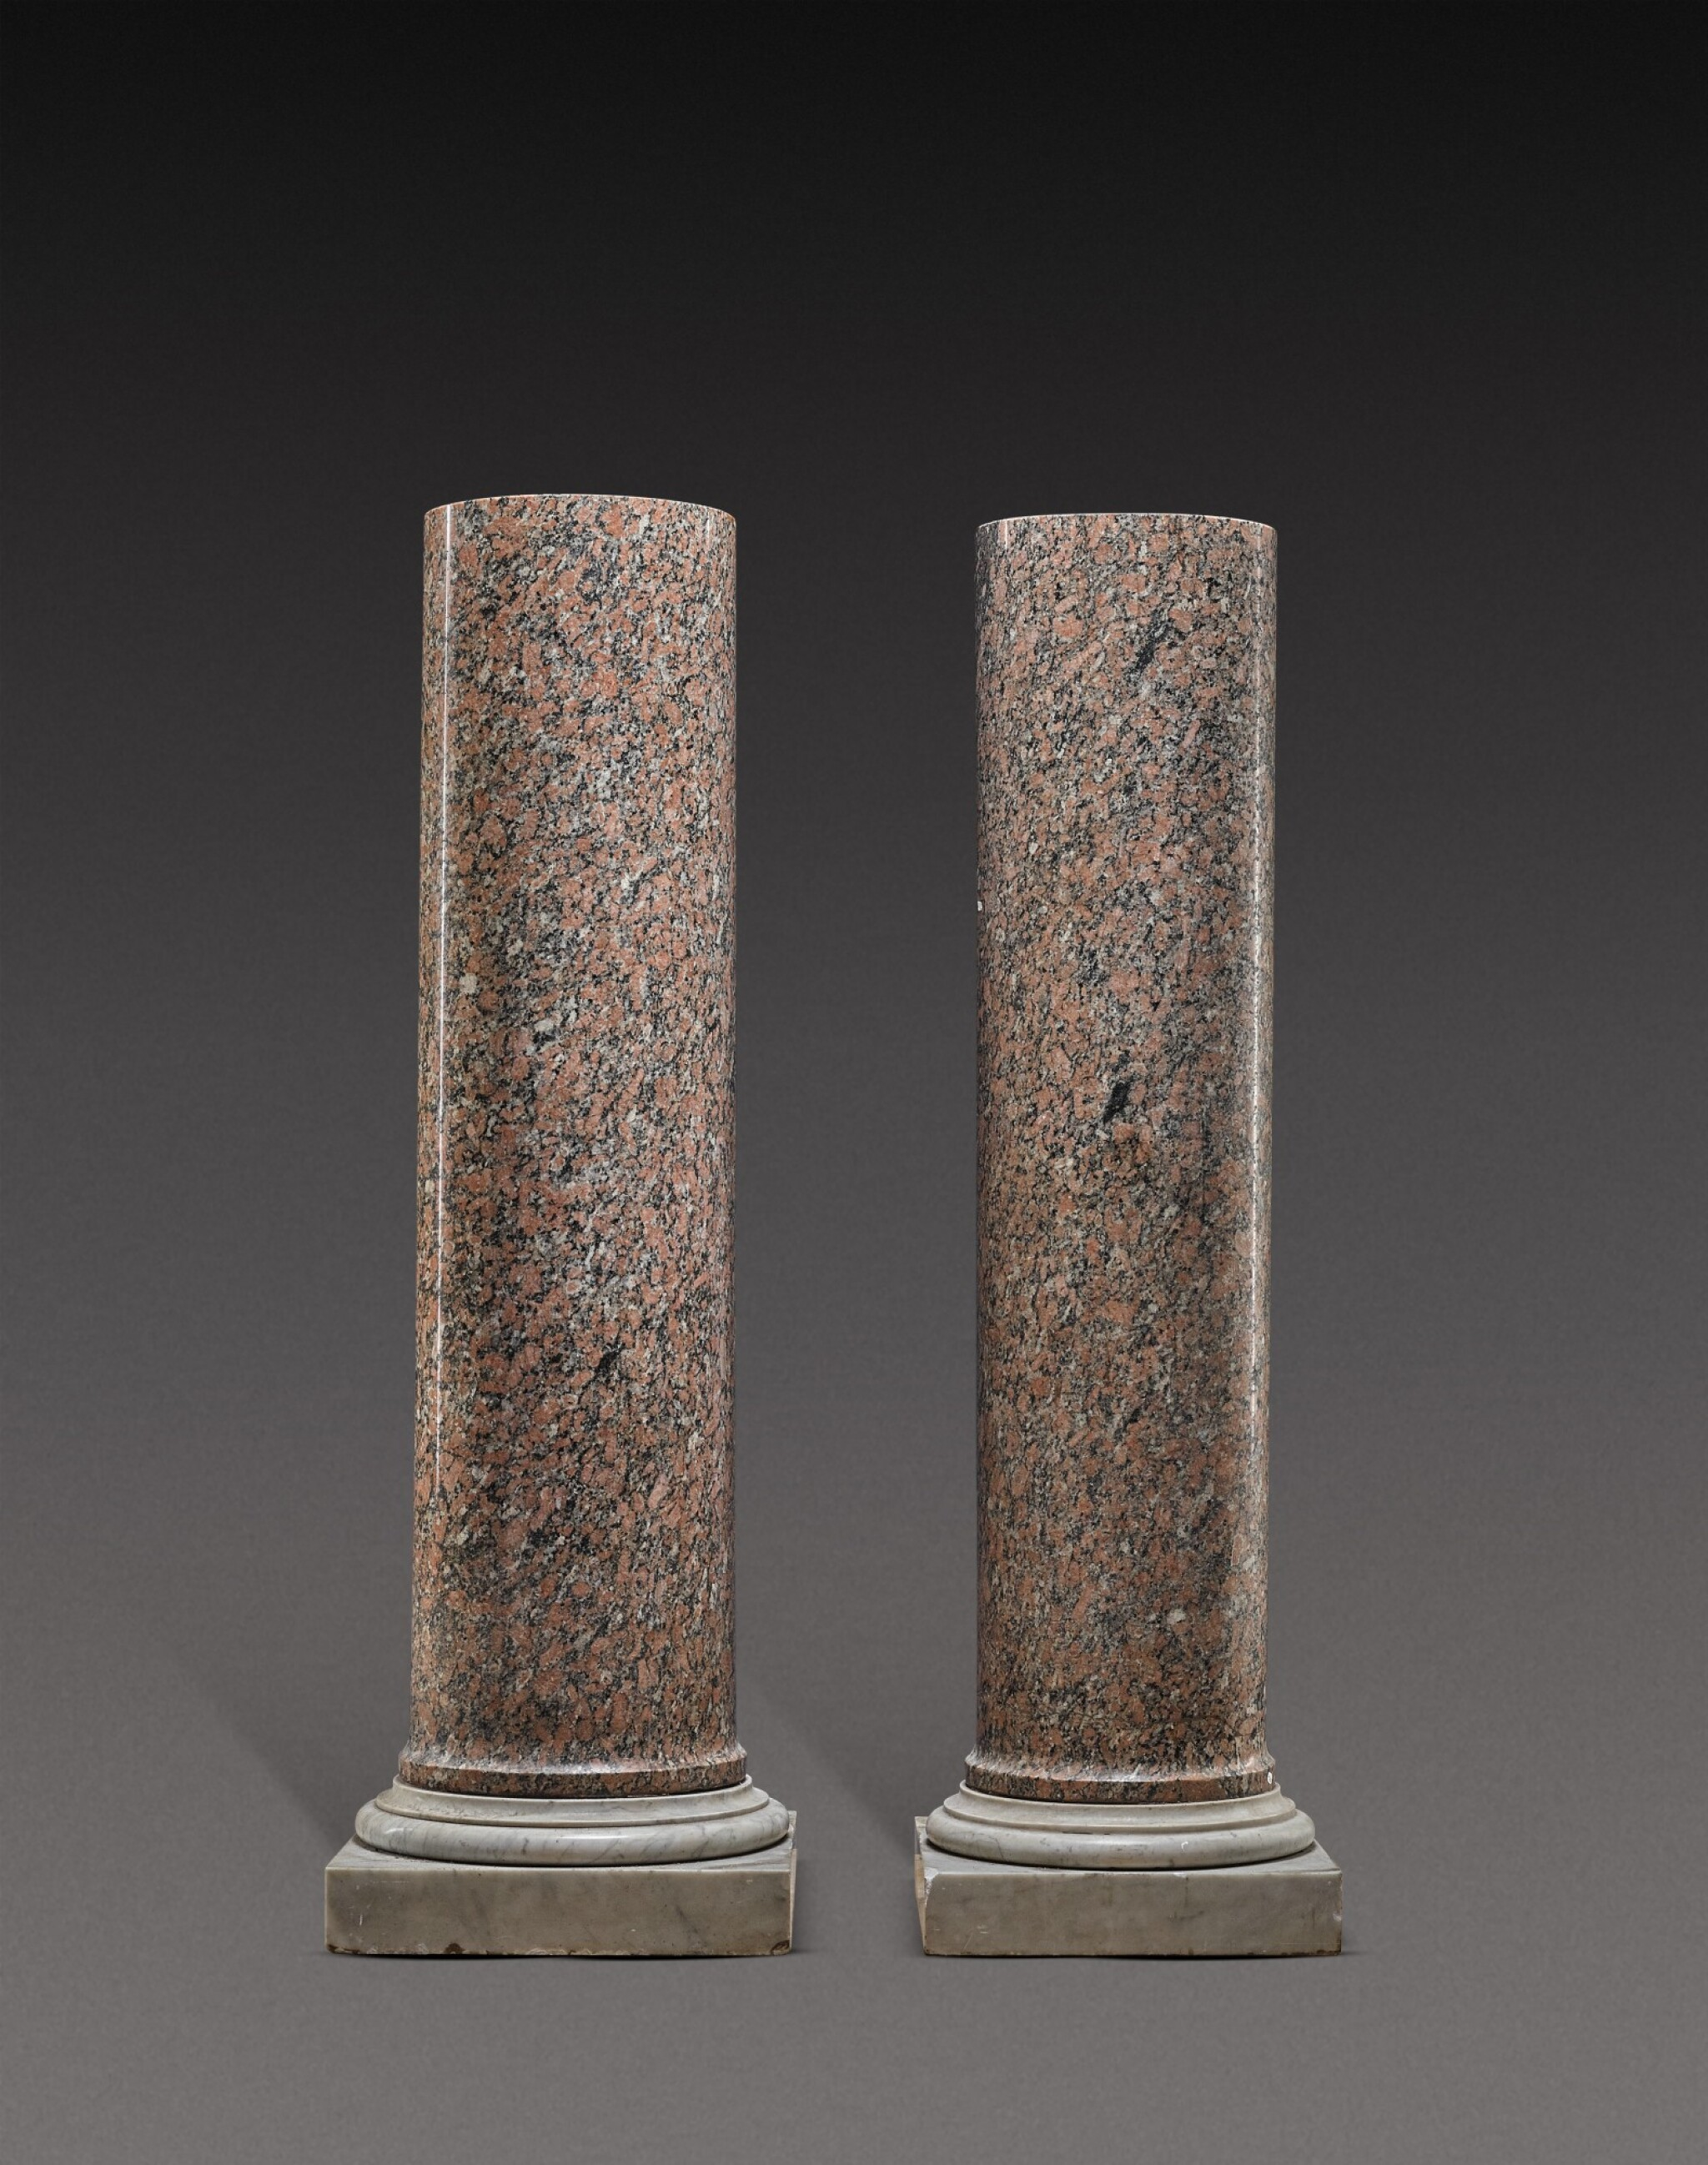 View 1 of Lot 152. Italian, circa 1800 | Pair of Columns.